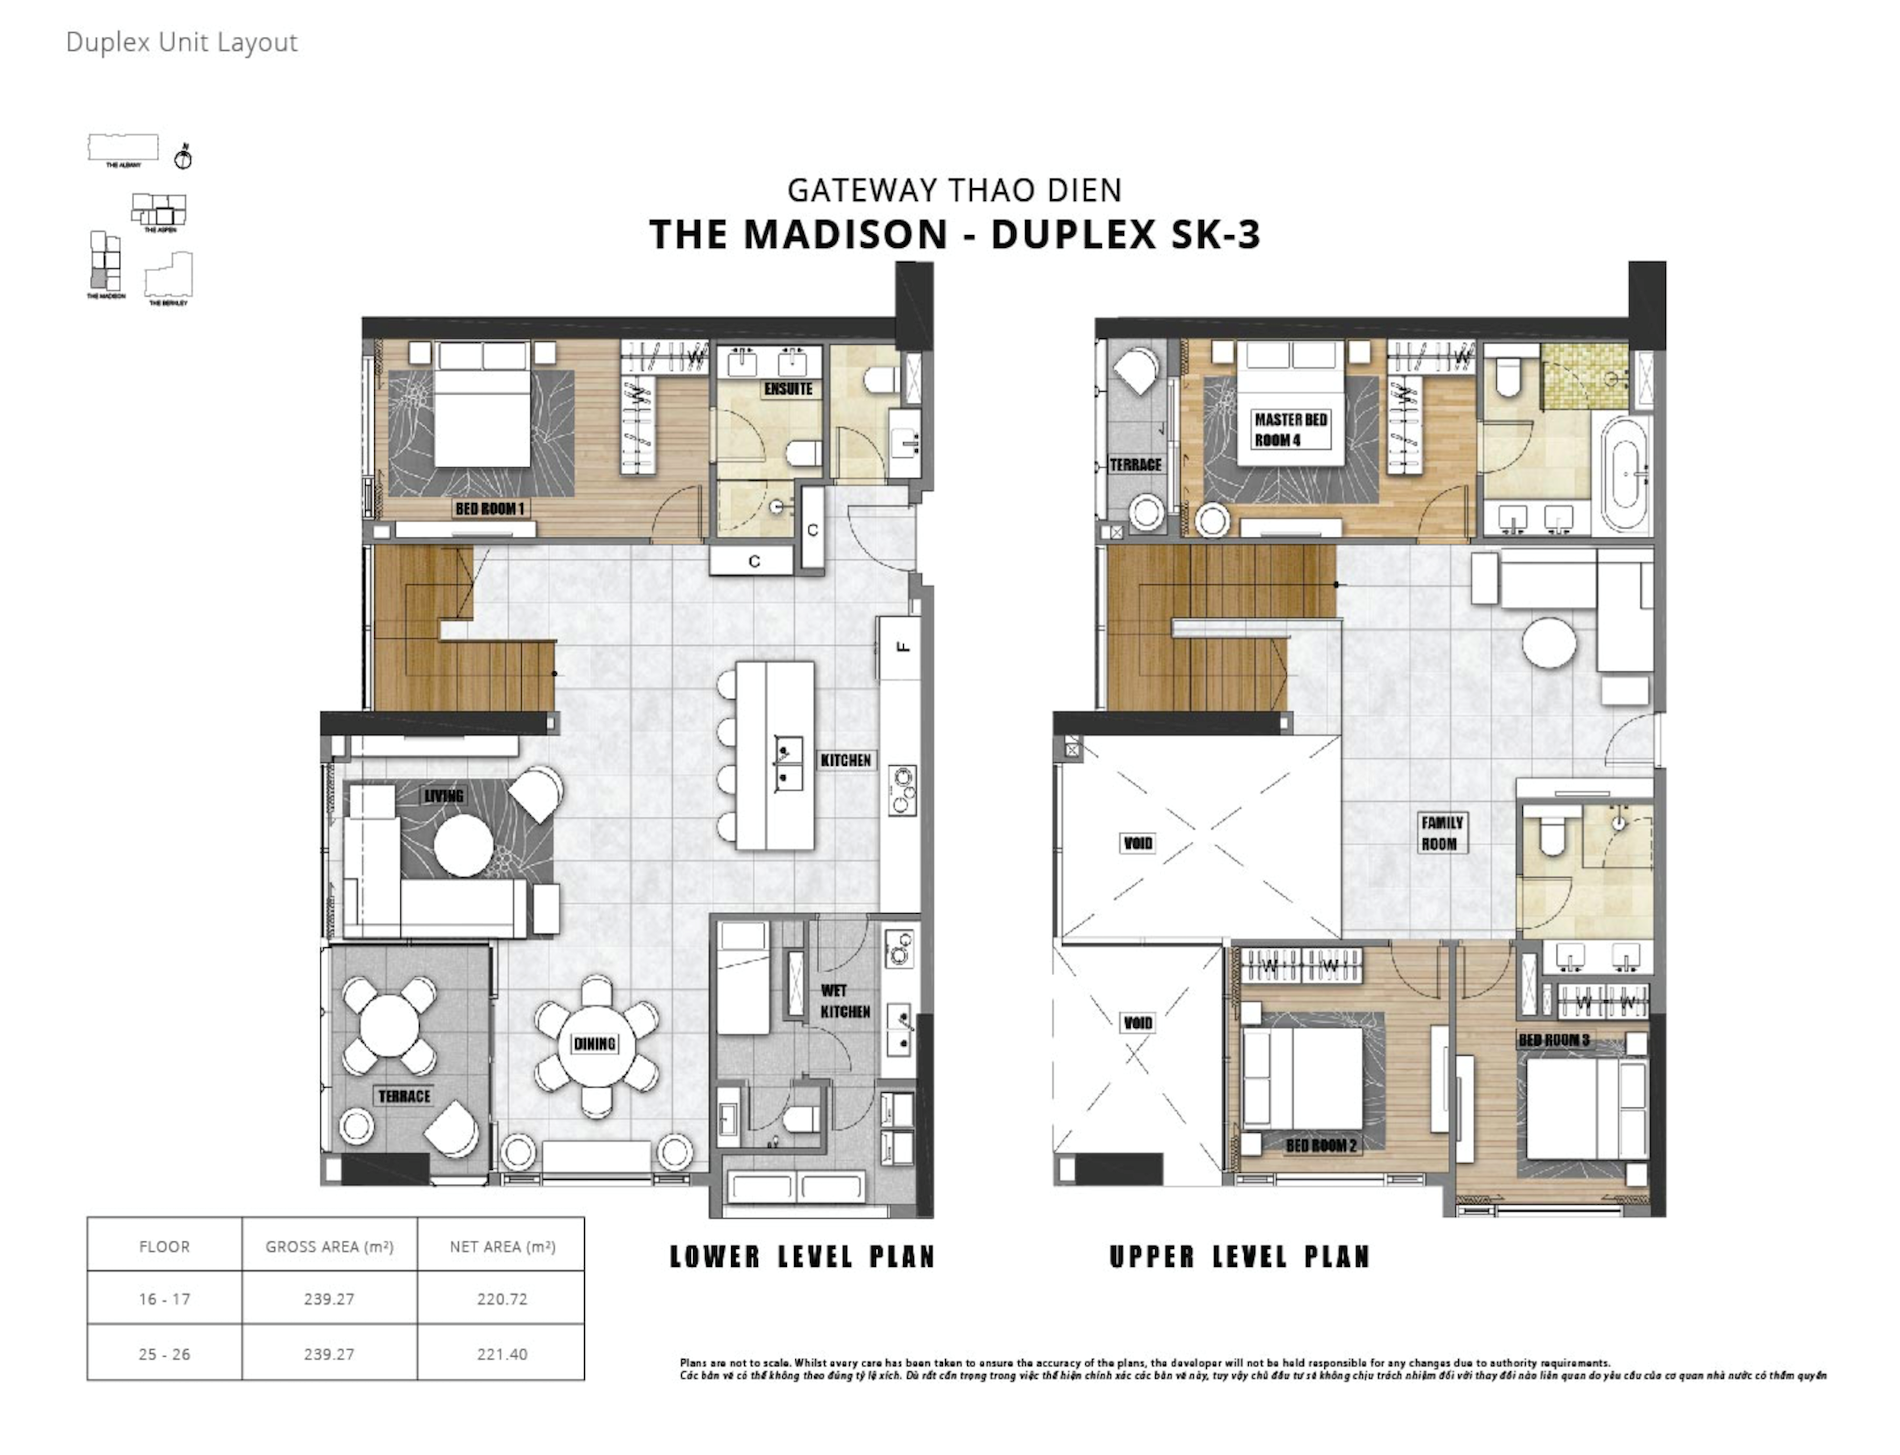 https://www.saos.vn/Uploads/t/pe/penthouse-gateway-thao-dien-duplex-the-madison-sk-3_0014025.png